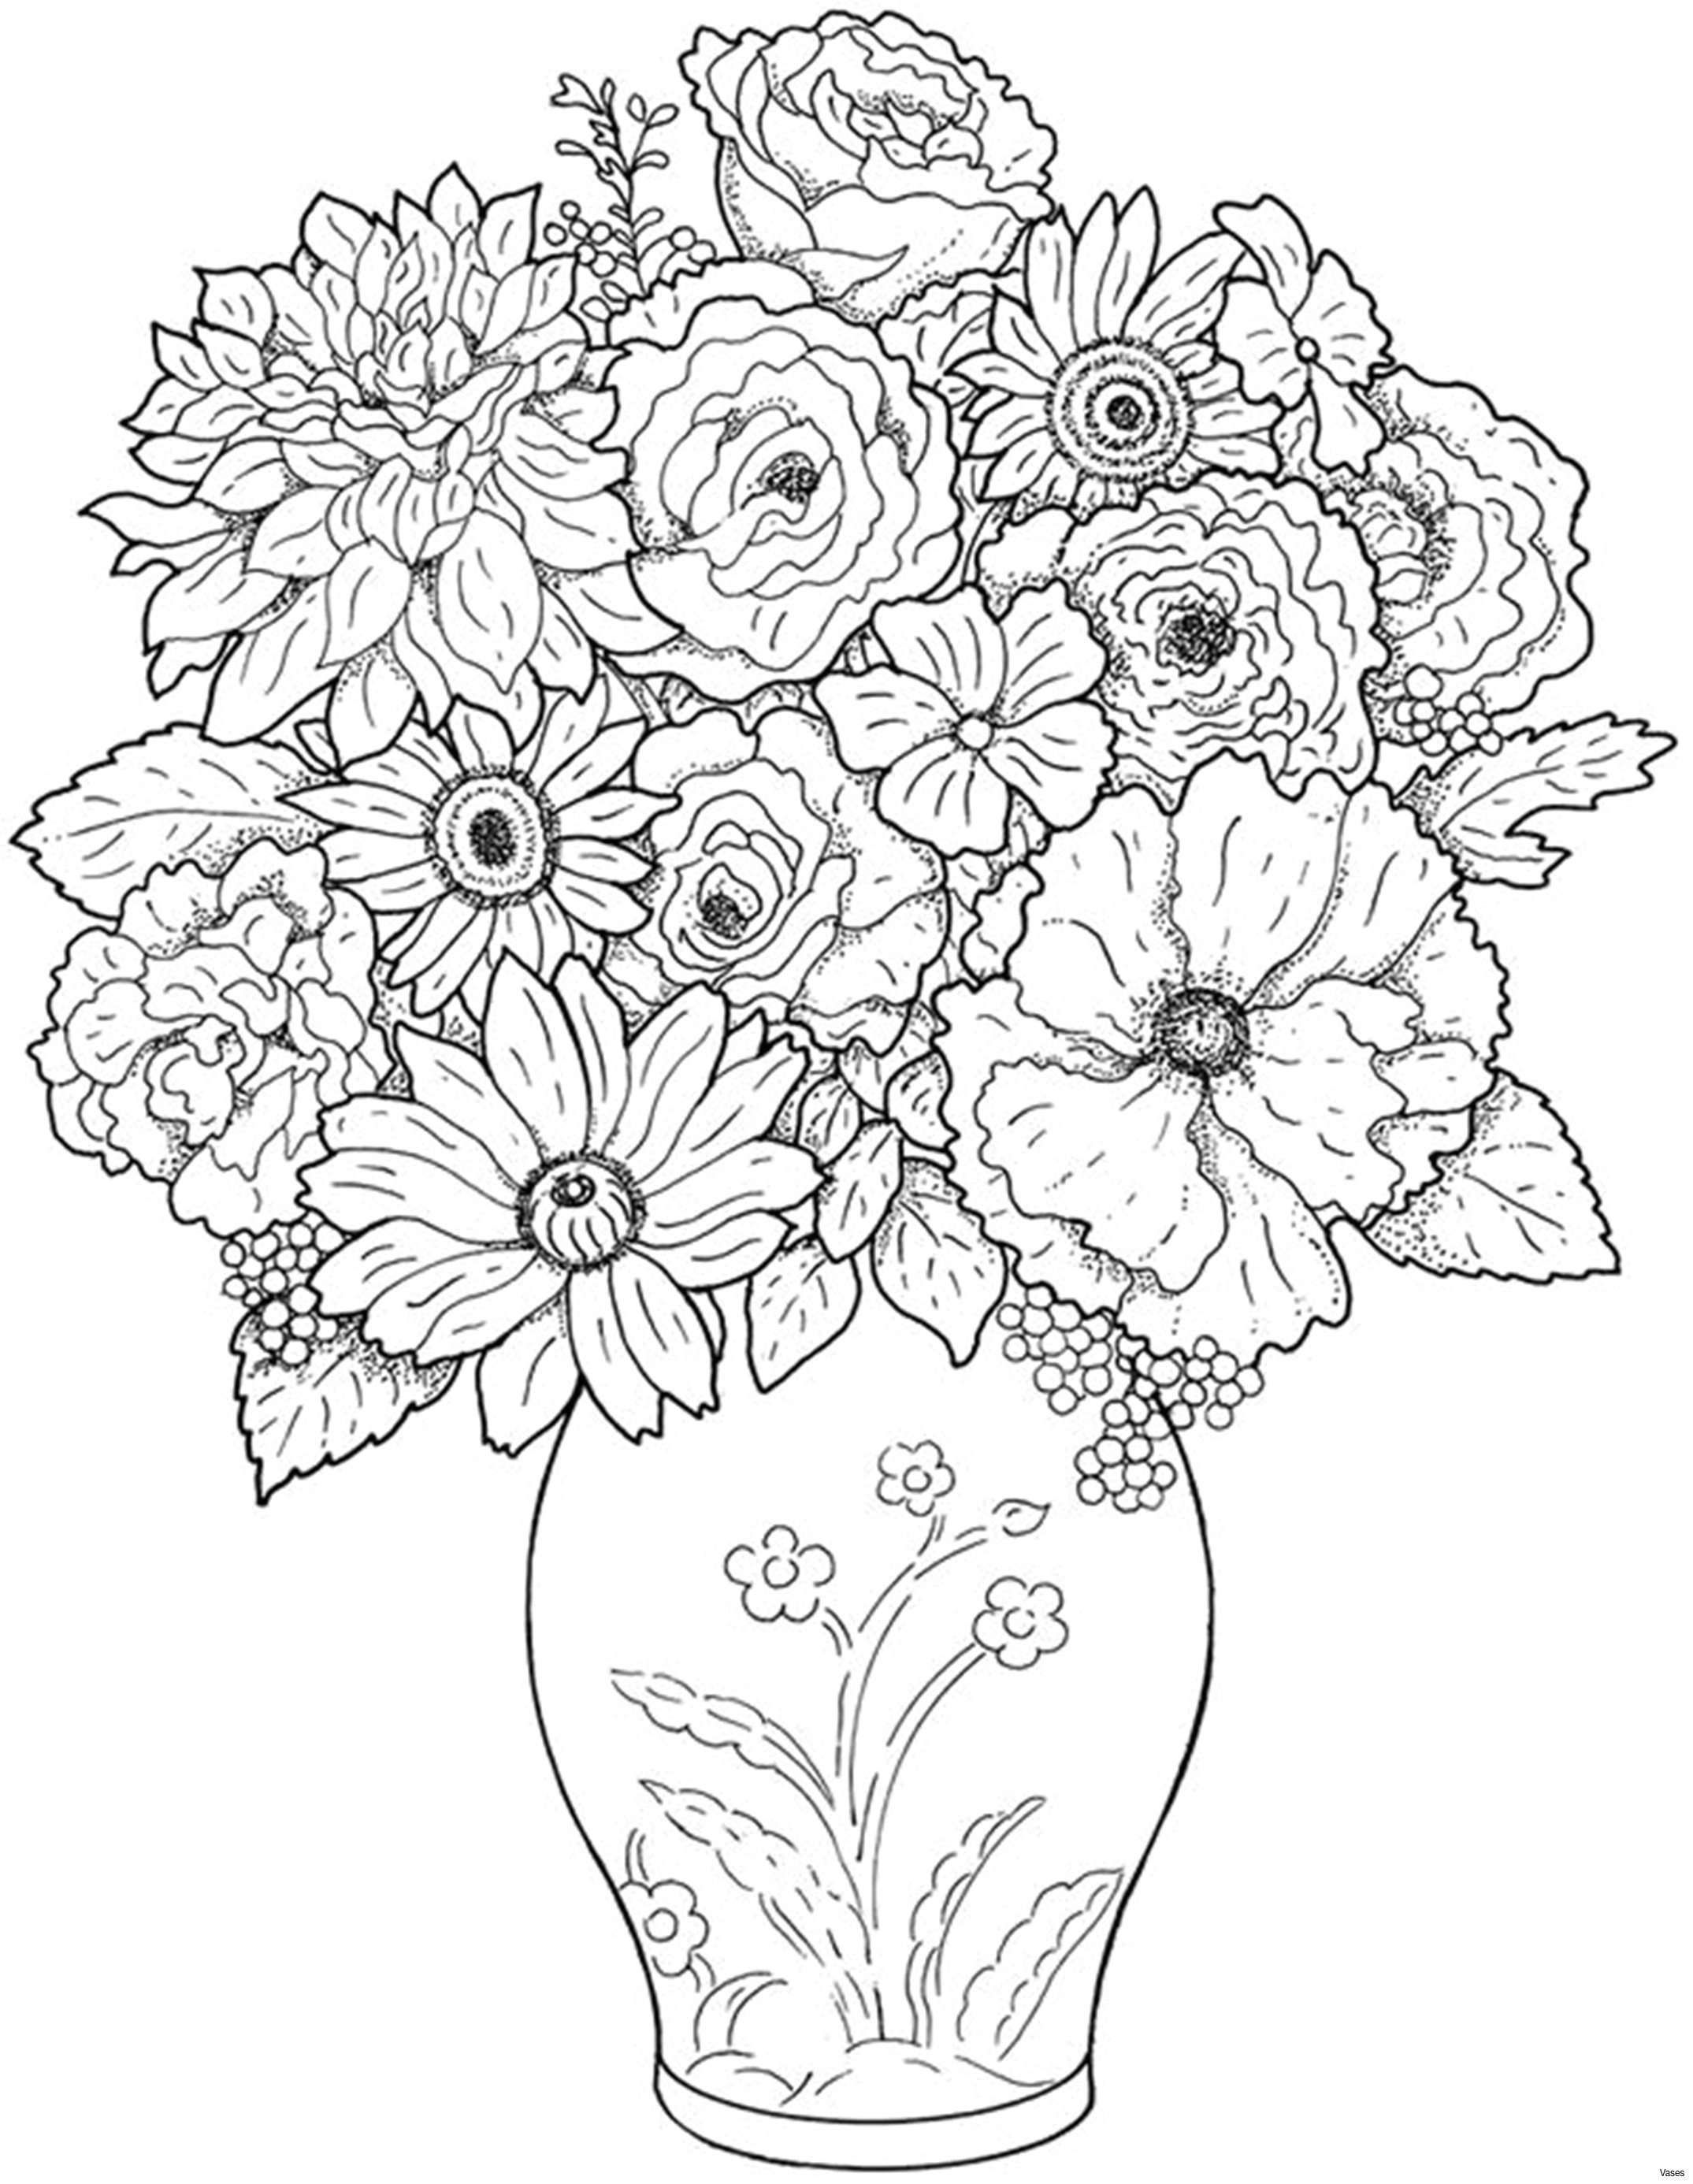 www colouring pages aua ergewohnliche cool vases flower vase coloring page pages flowers in a top